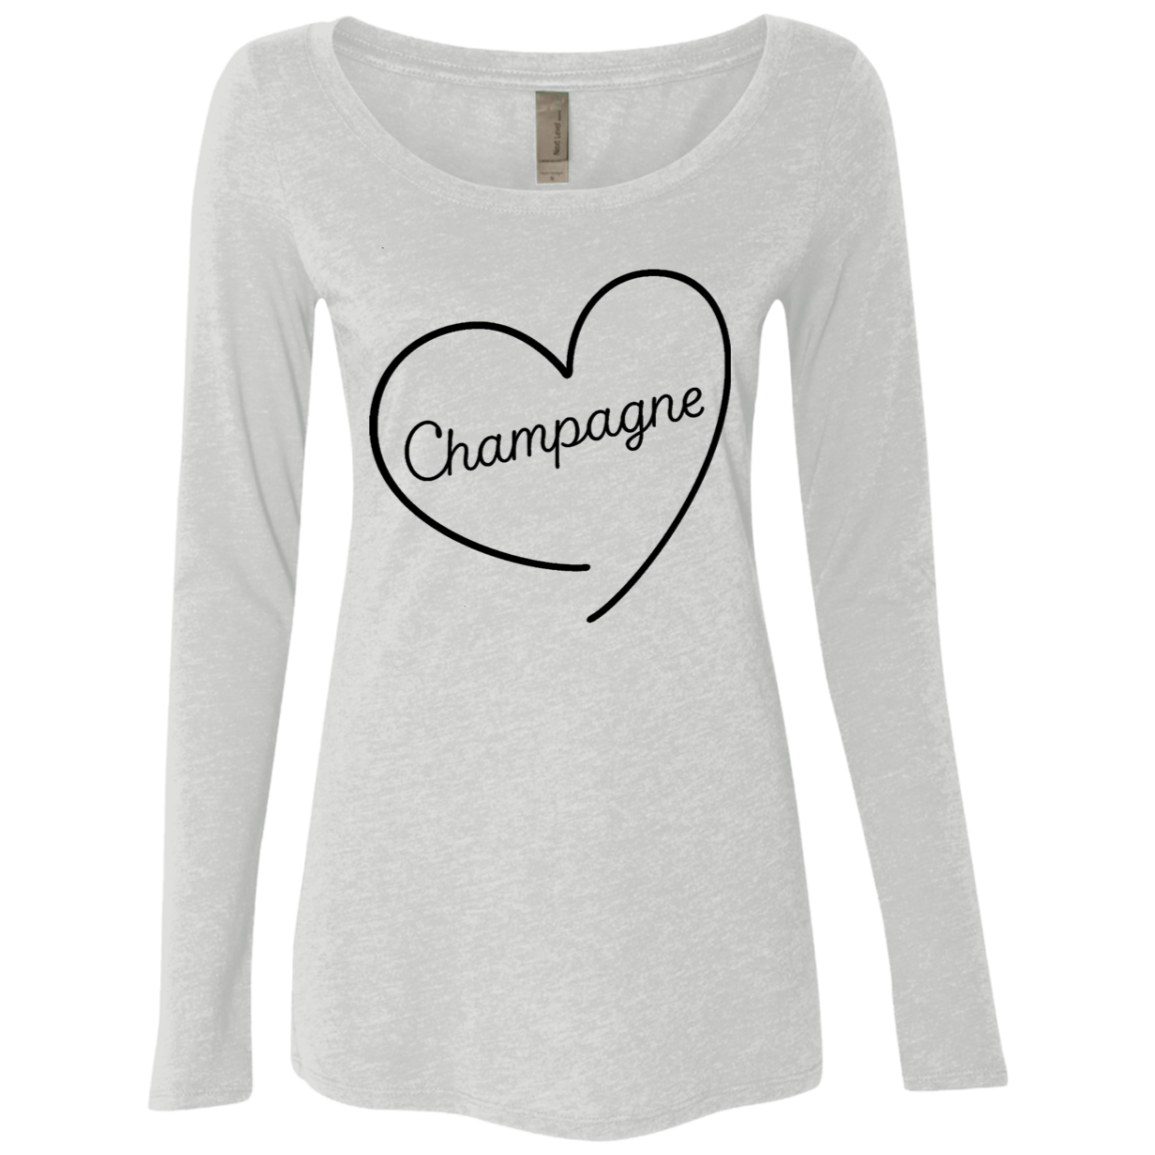 Champagne Love Women's Long Sleeve Tee - Trendy Tees